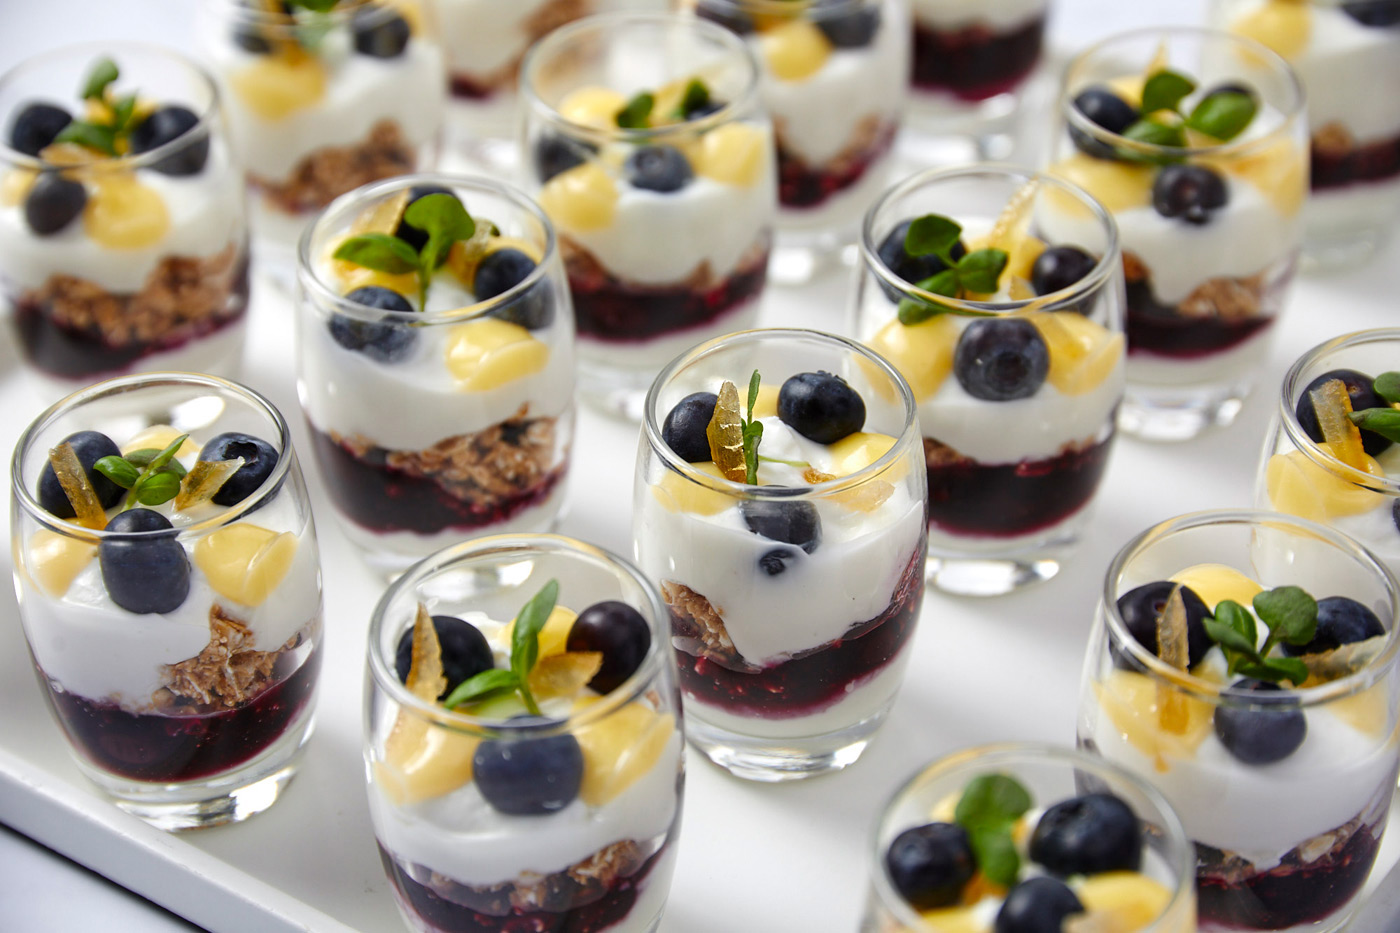 Lemon Blueberry Parfait